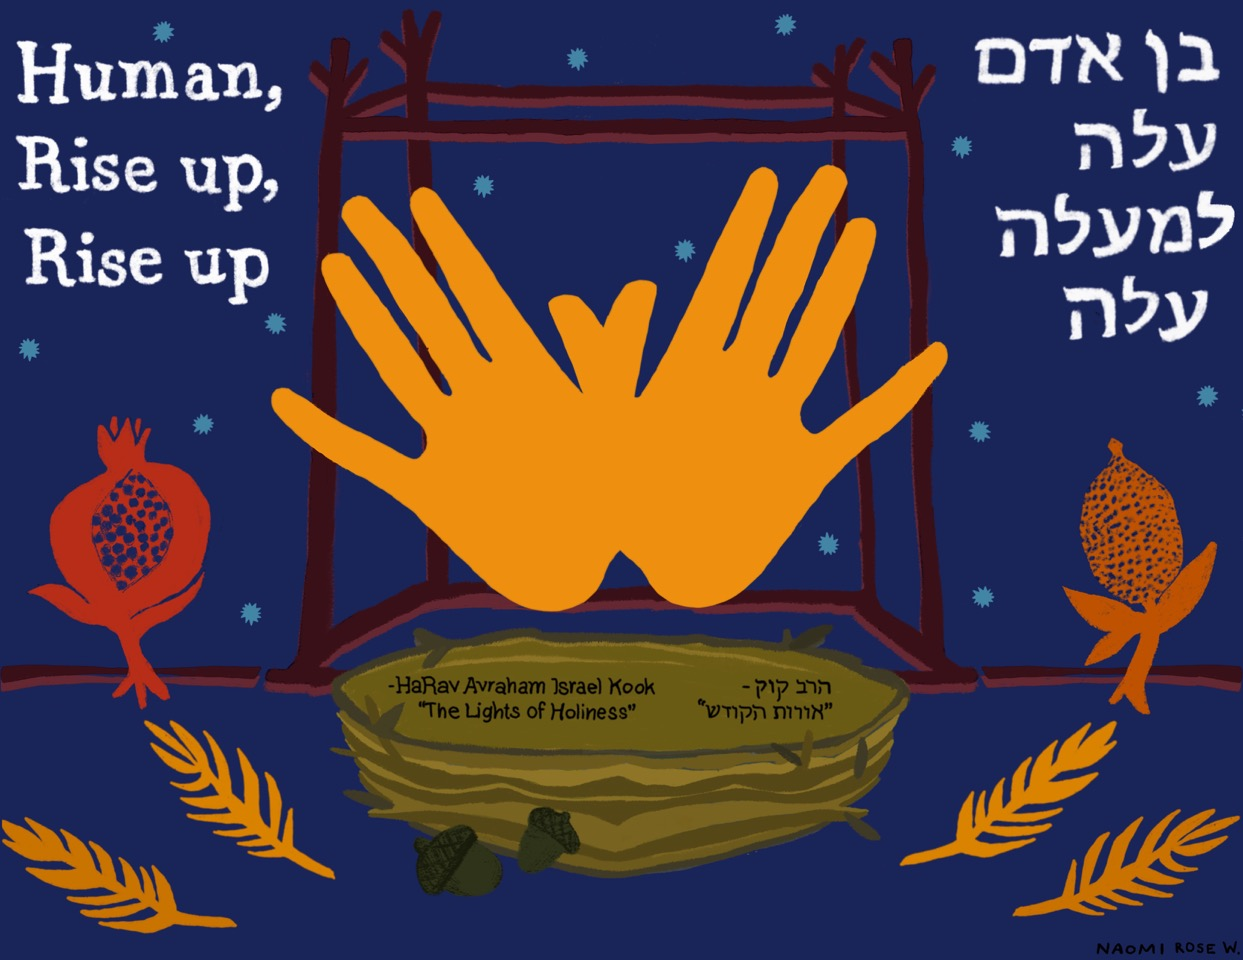 From Elul thru Tishrei – Rising Up With Isaiah